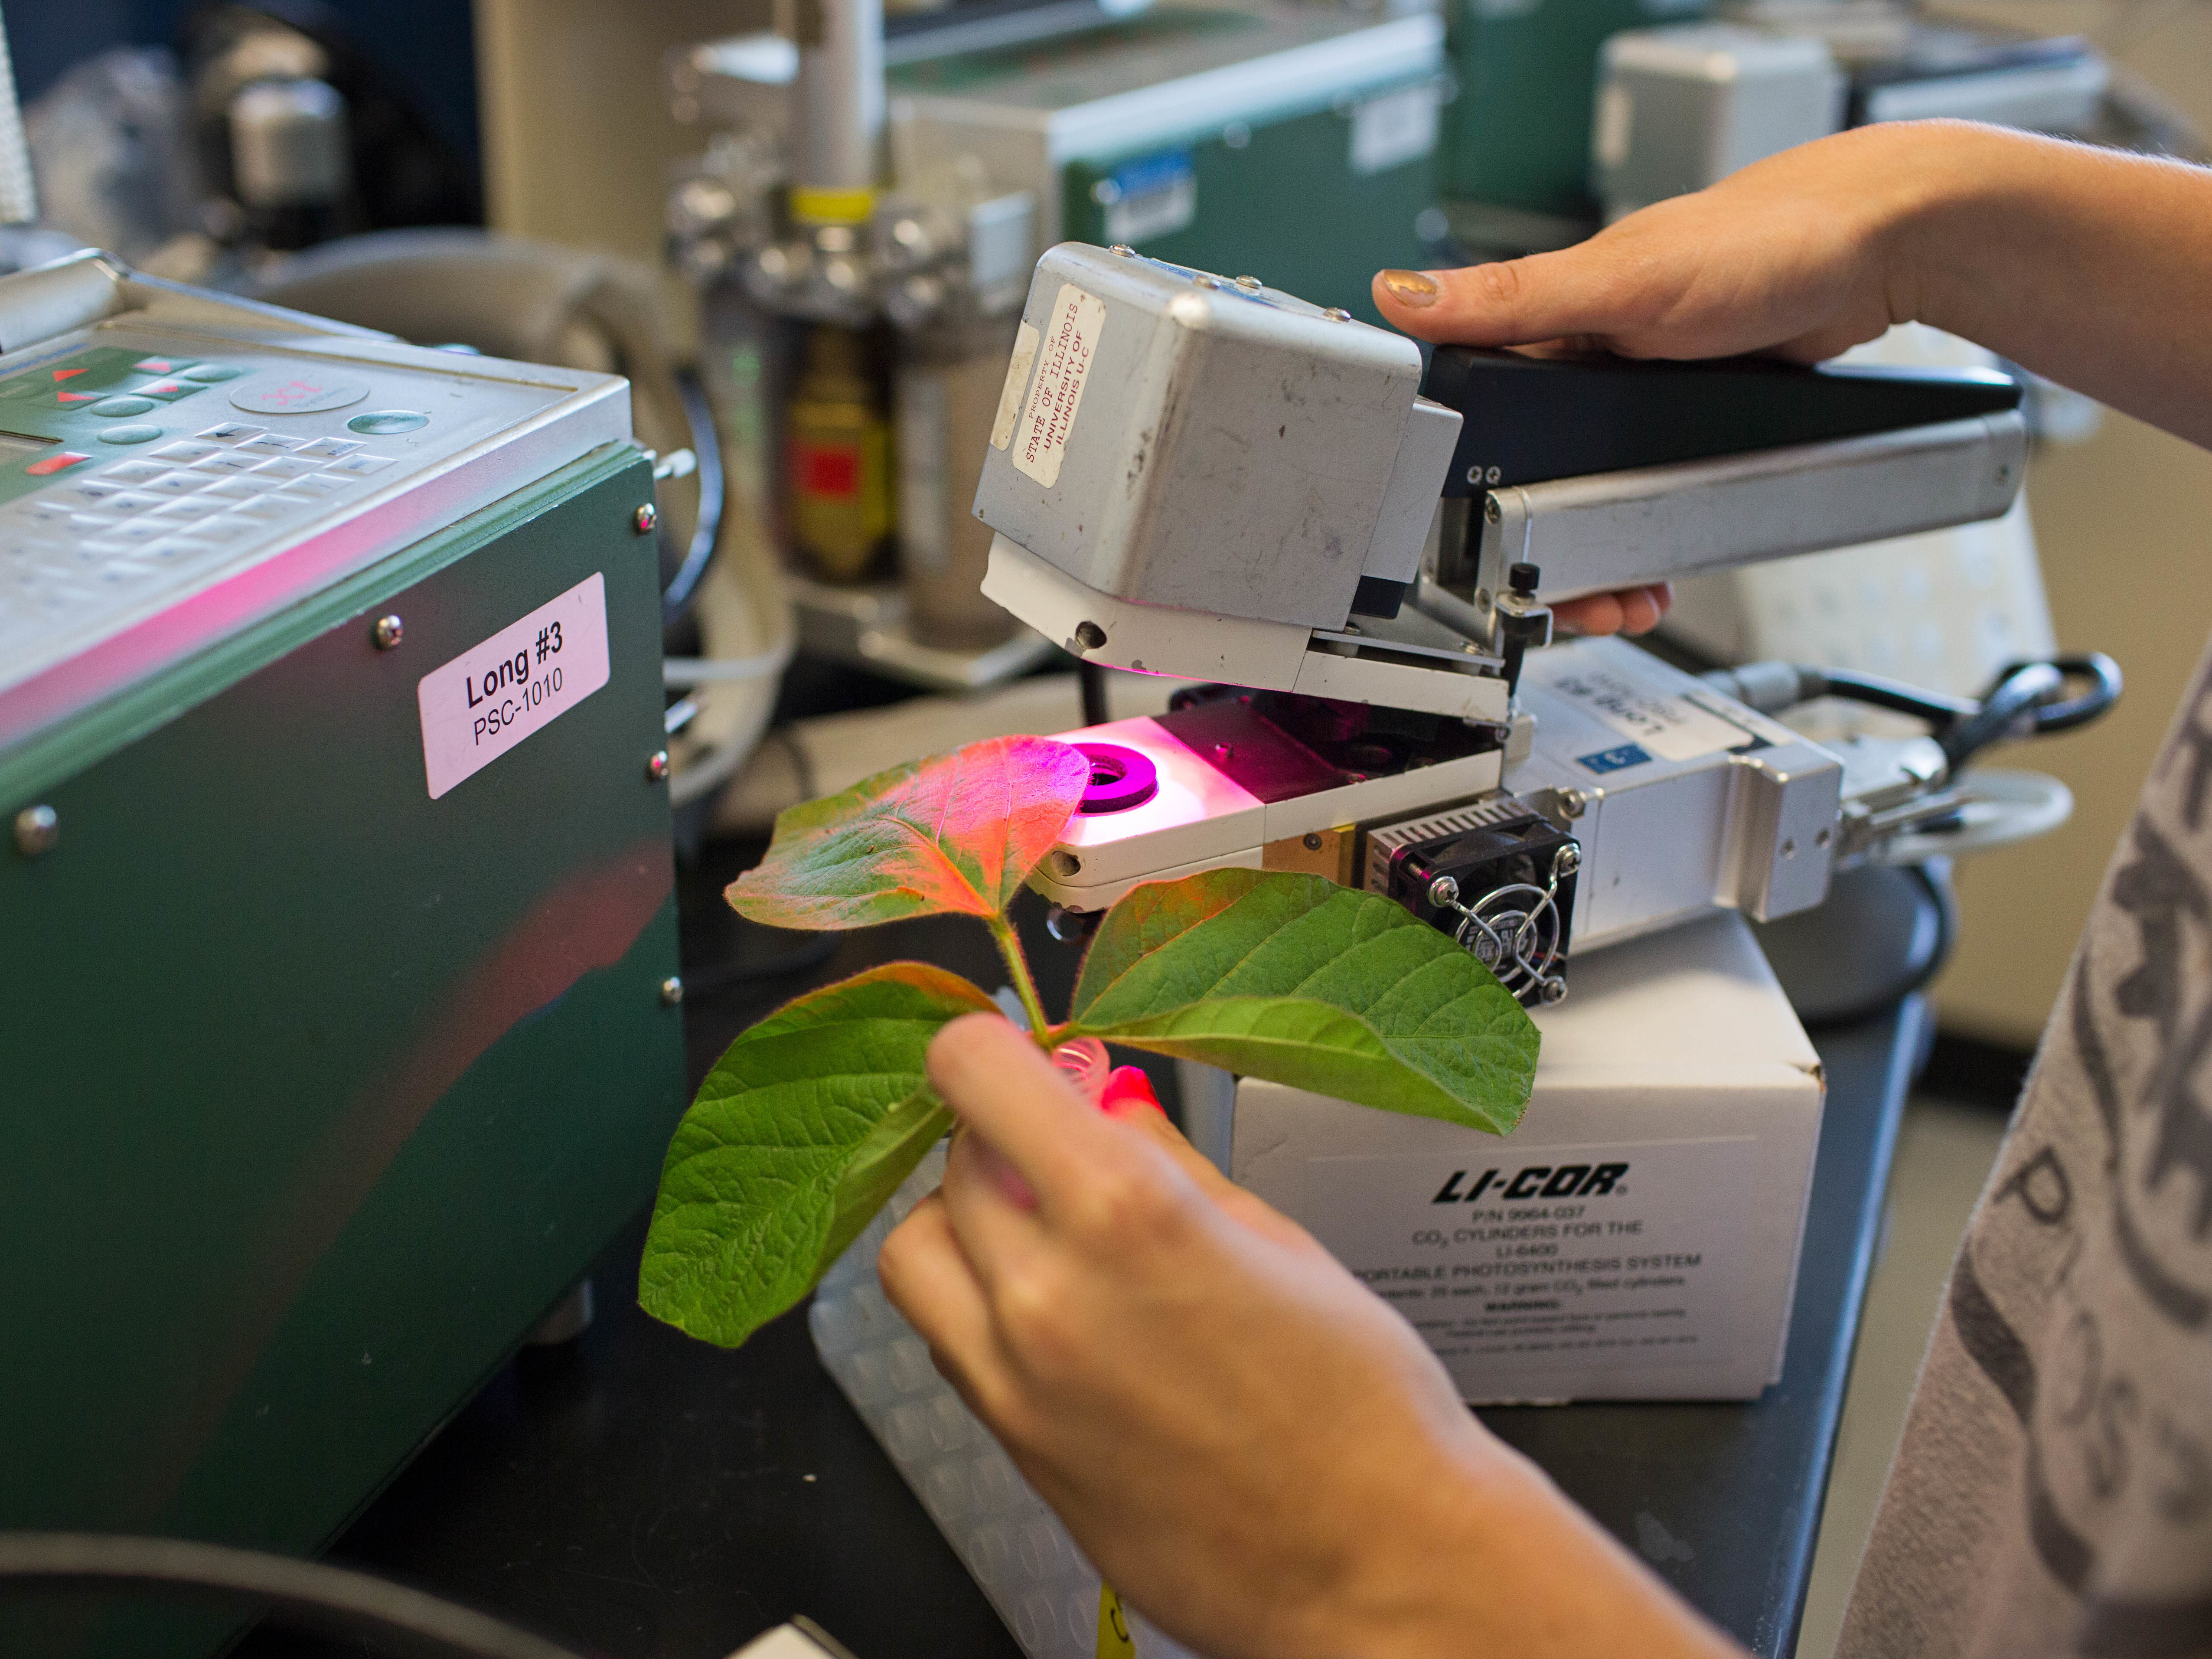 Scientists have re-engineered photosynthesis, the foundation of life on Earth, creating genetically modified plants that grow faster and bigger. Above, scientists measure how well modified tobacco plants photosynthesize compared to unmodified plants. (Haley Ahlers/RIPE Project)